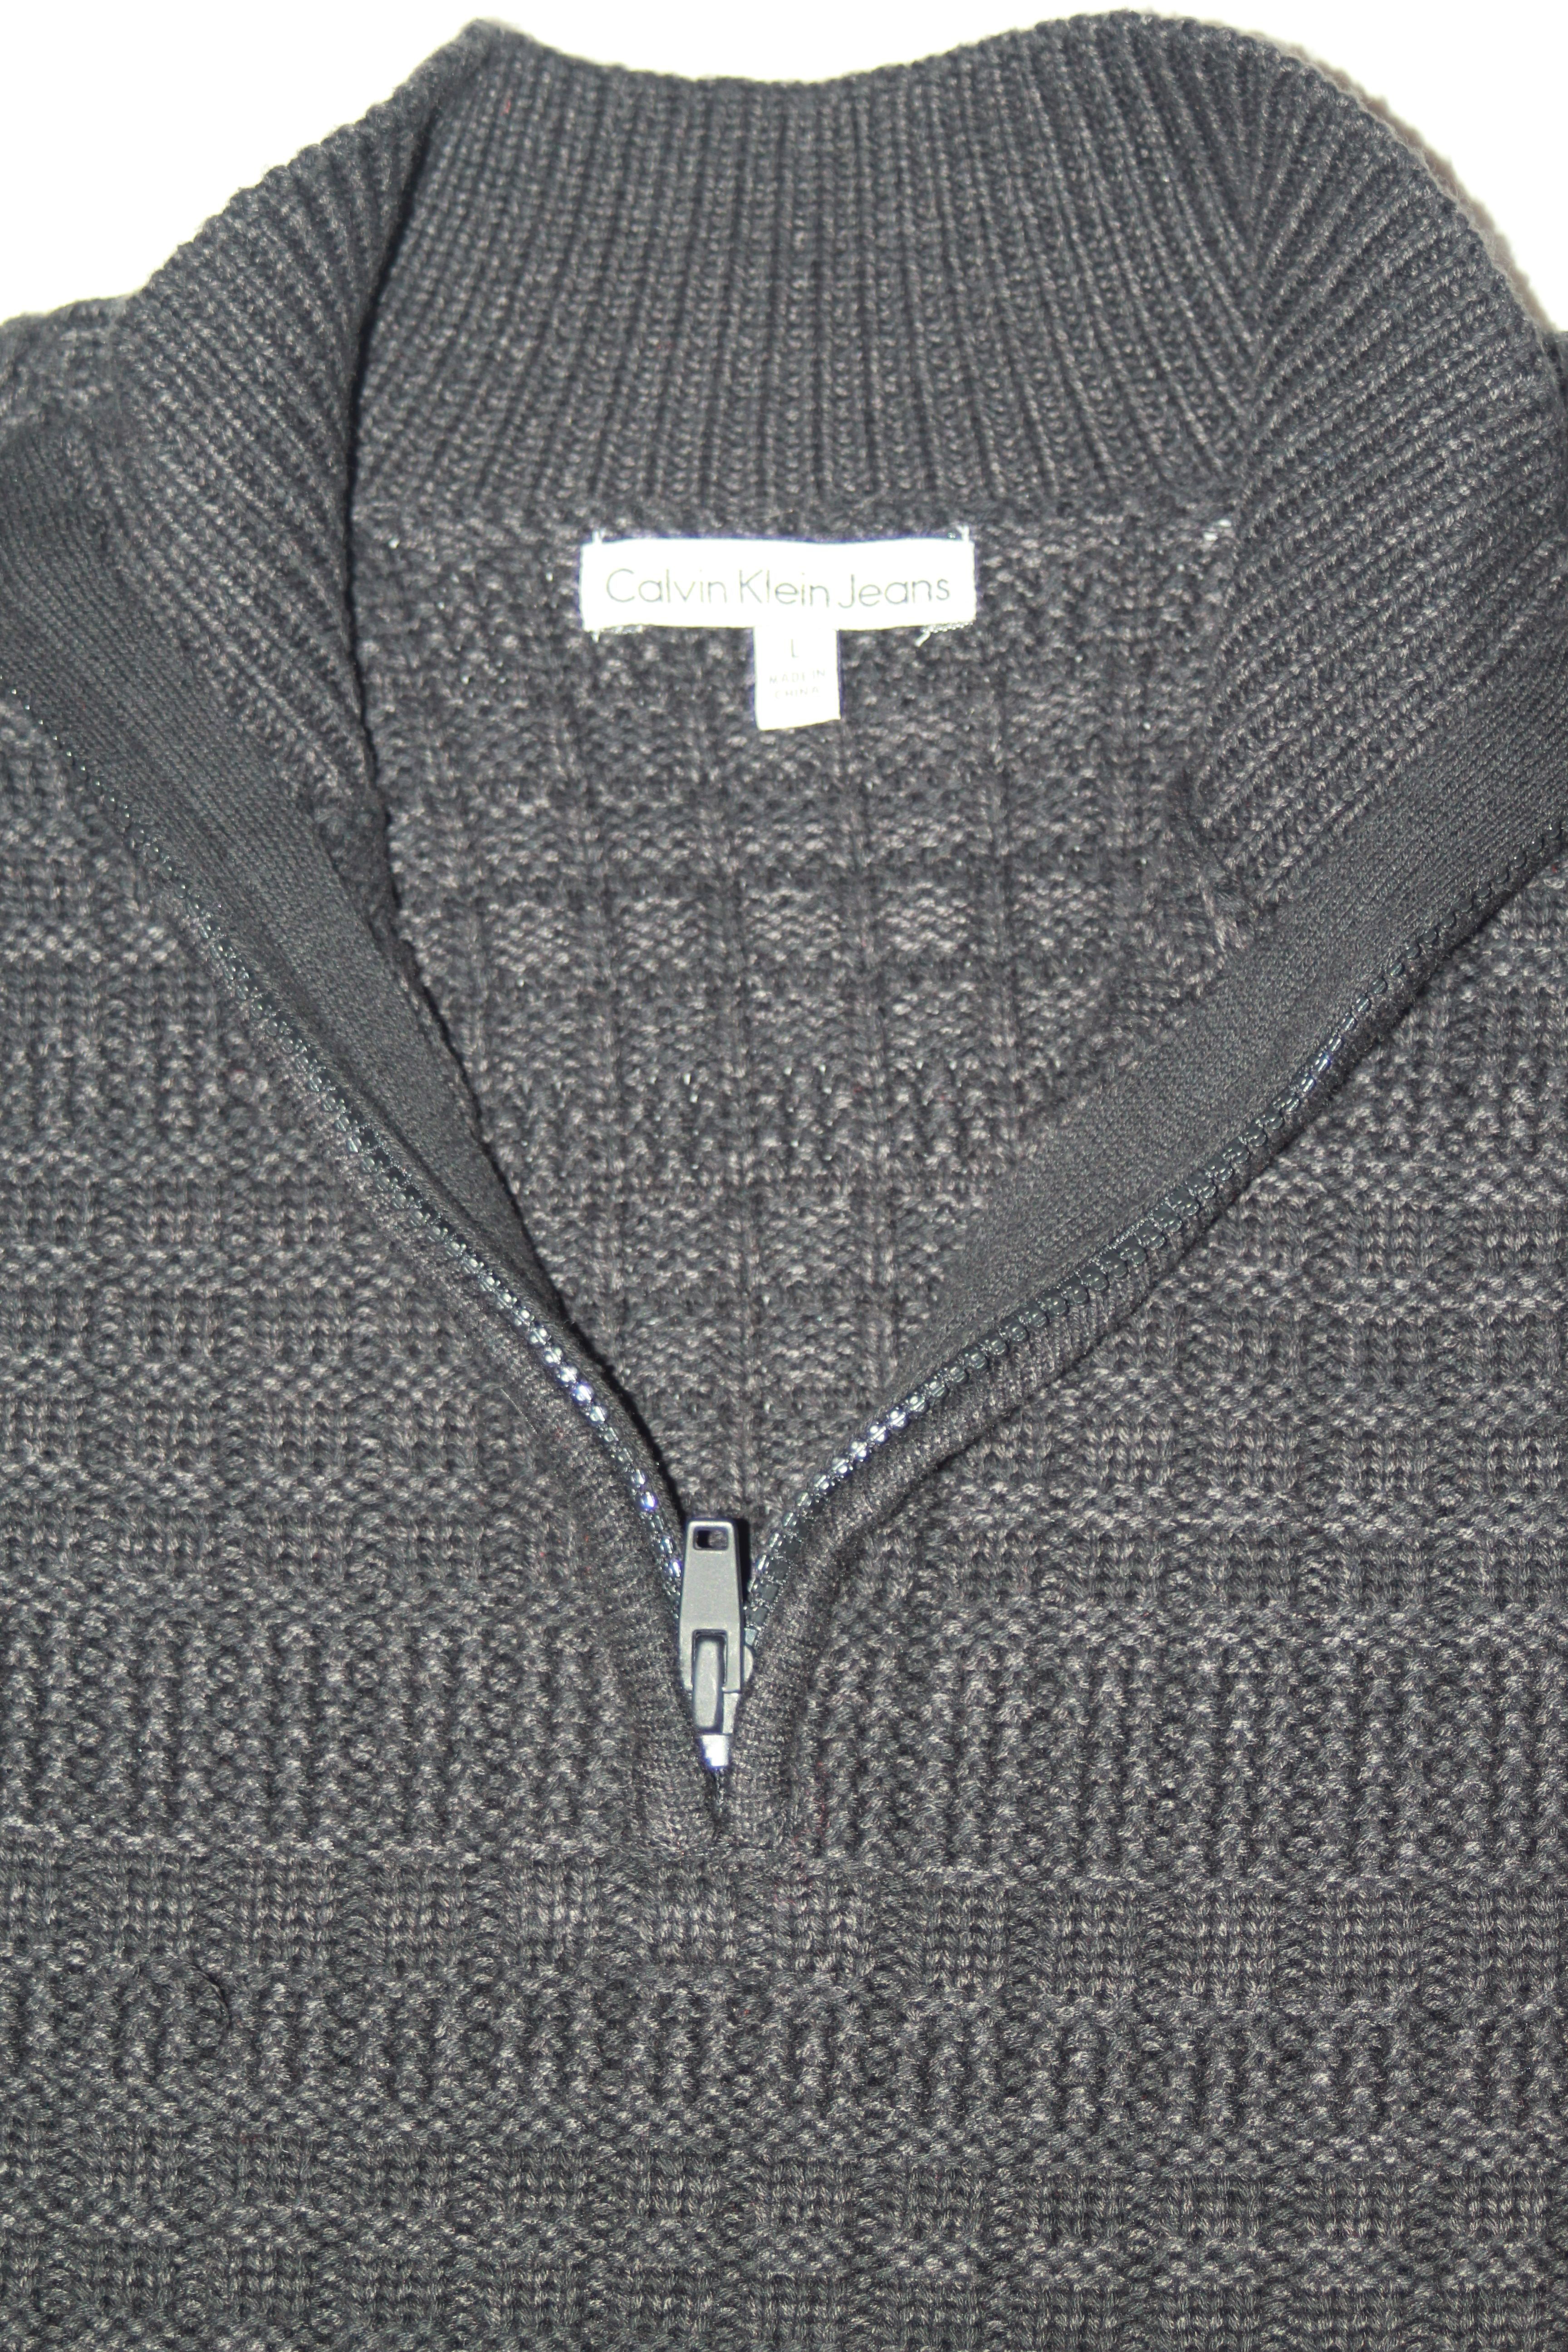 5cdf04aaf7f6 Calvin Klein mens  100 NWT sweater ... Men s size Large   L ... long ...